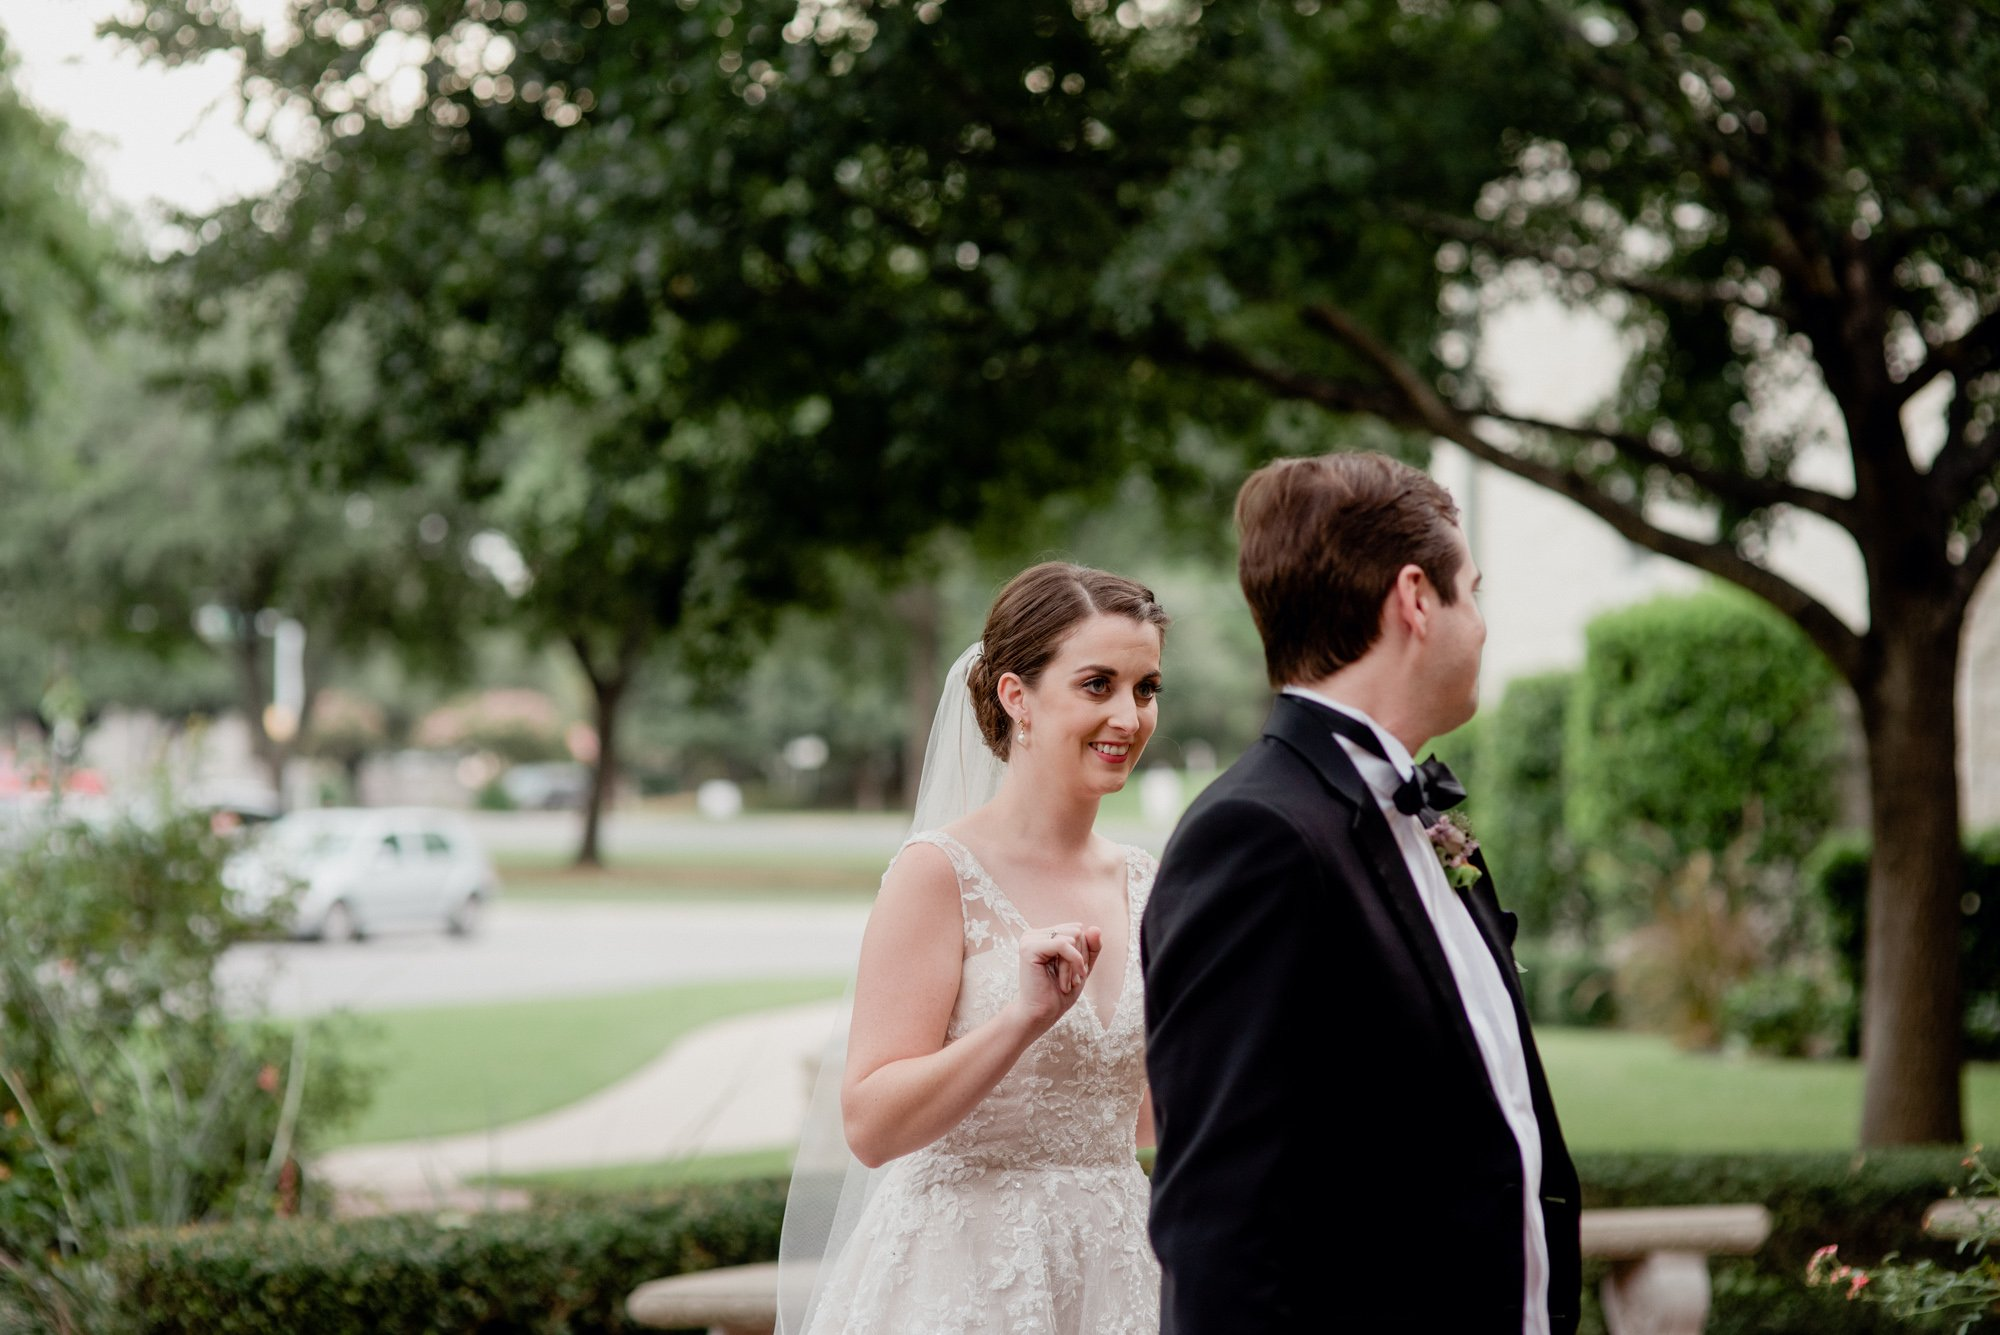 first look outside catholic church in austin, fist look at a wedding, emotional wedding photography in austin texas